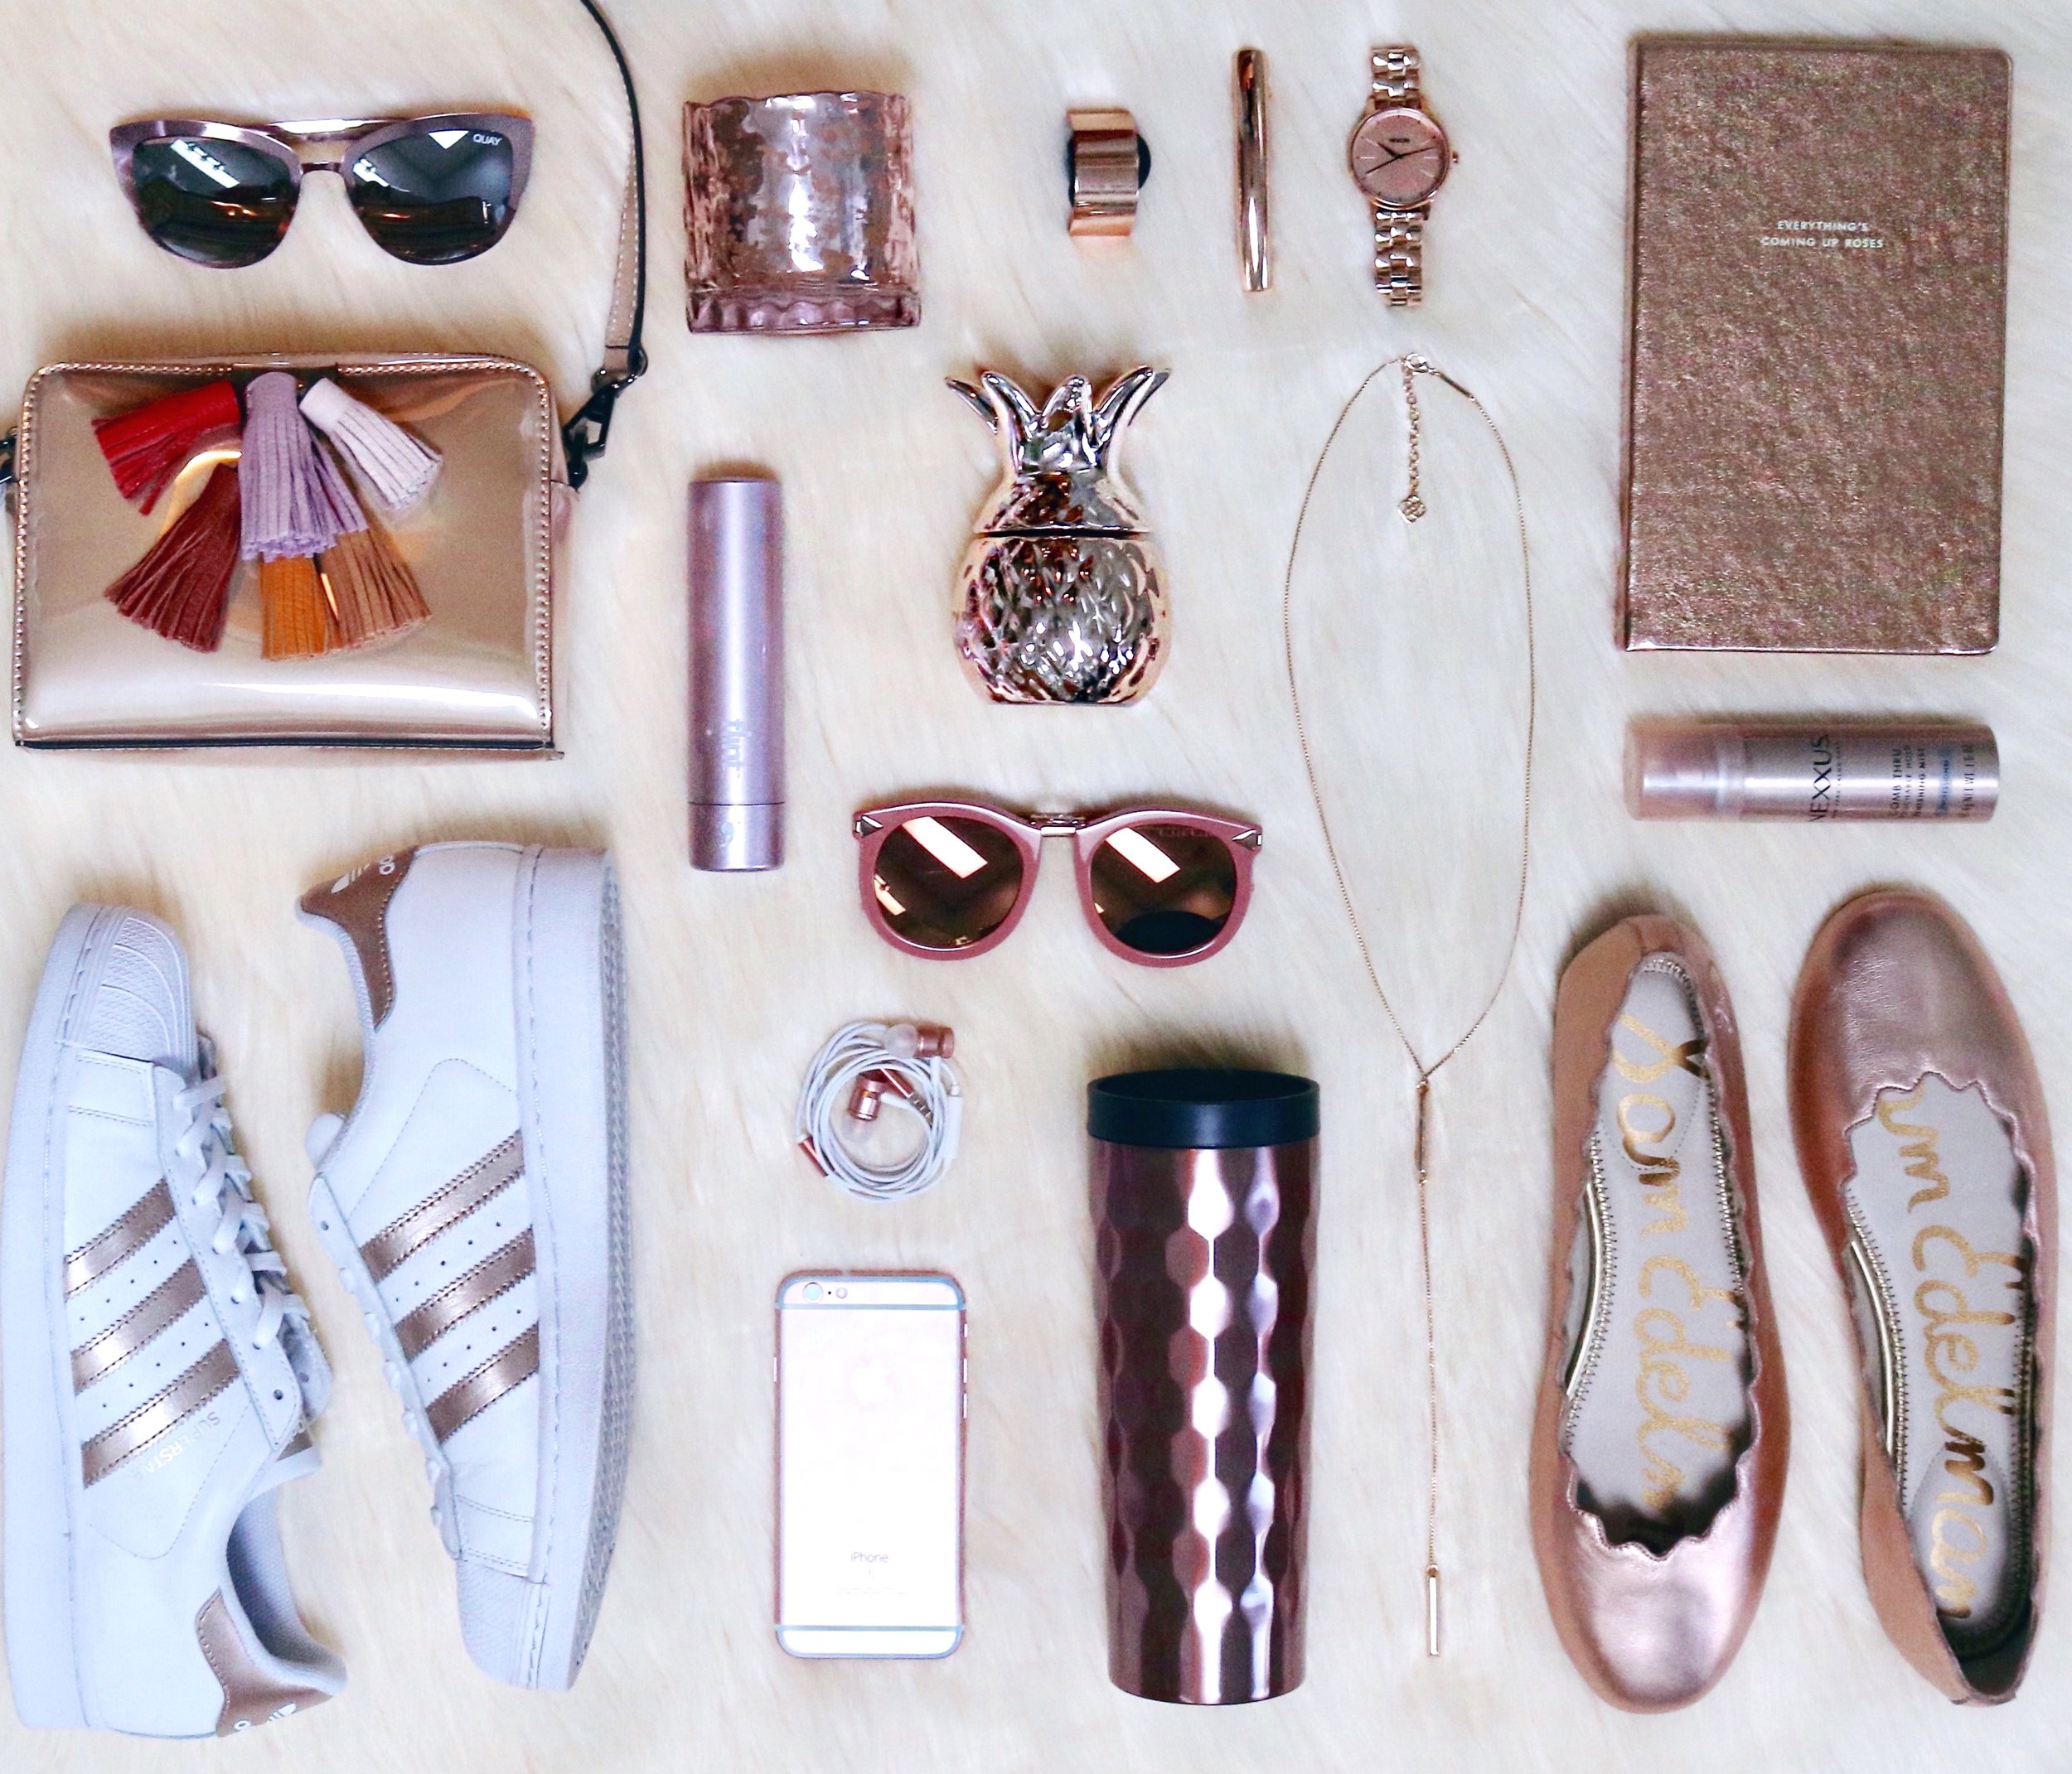 rose-gold-sunglasses-purse-adidas-sneakers-notebook-shoes.jpg